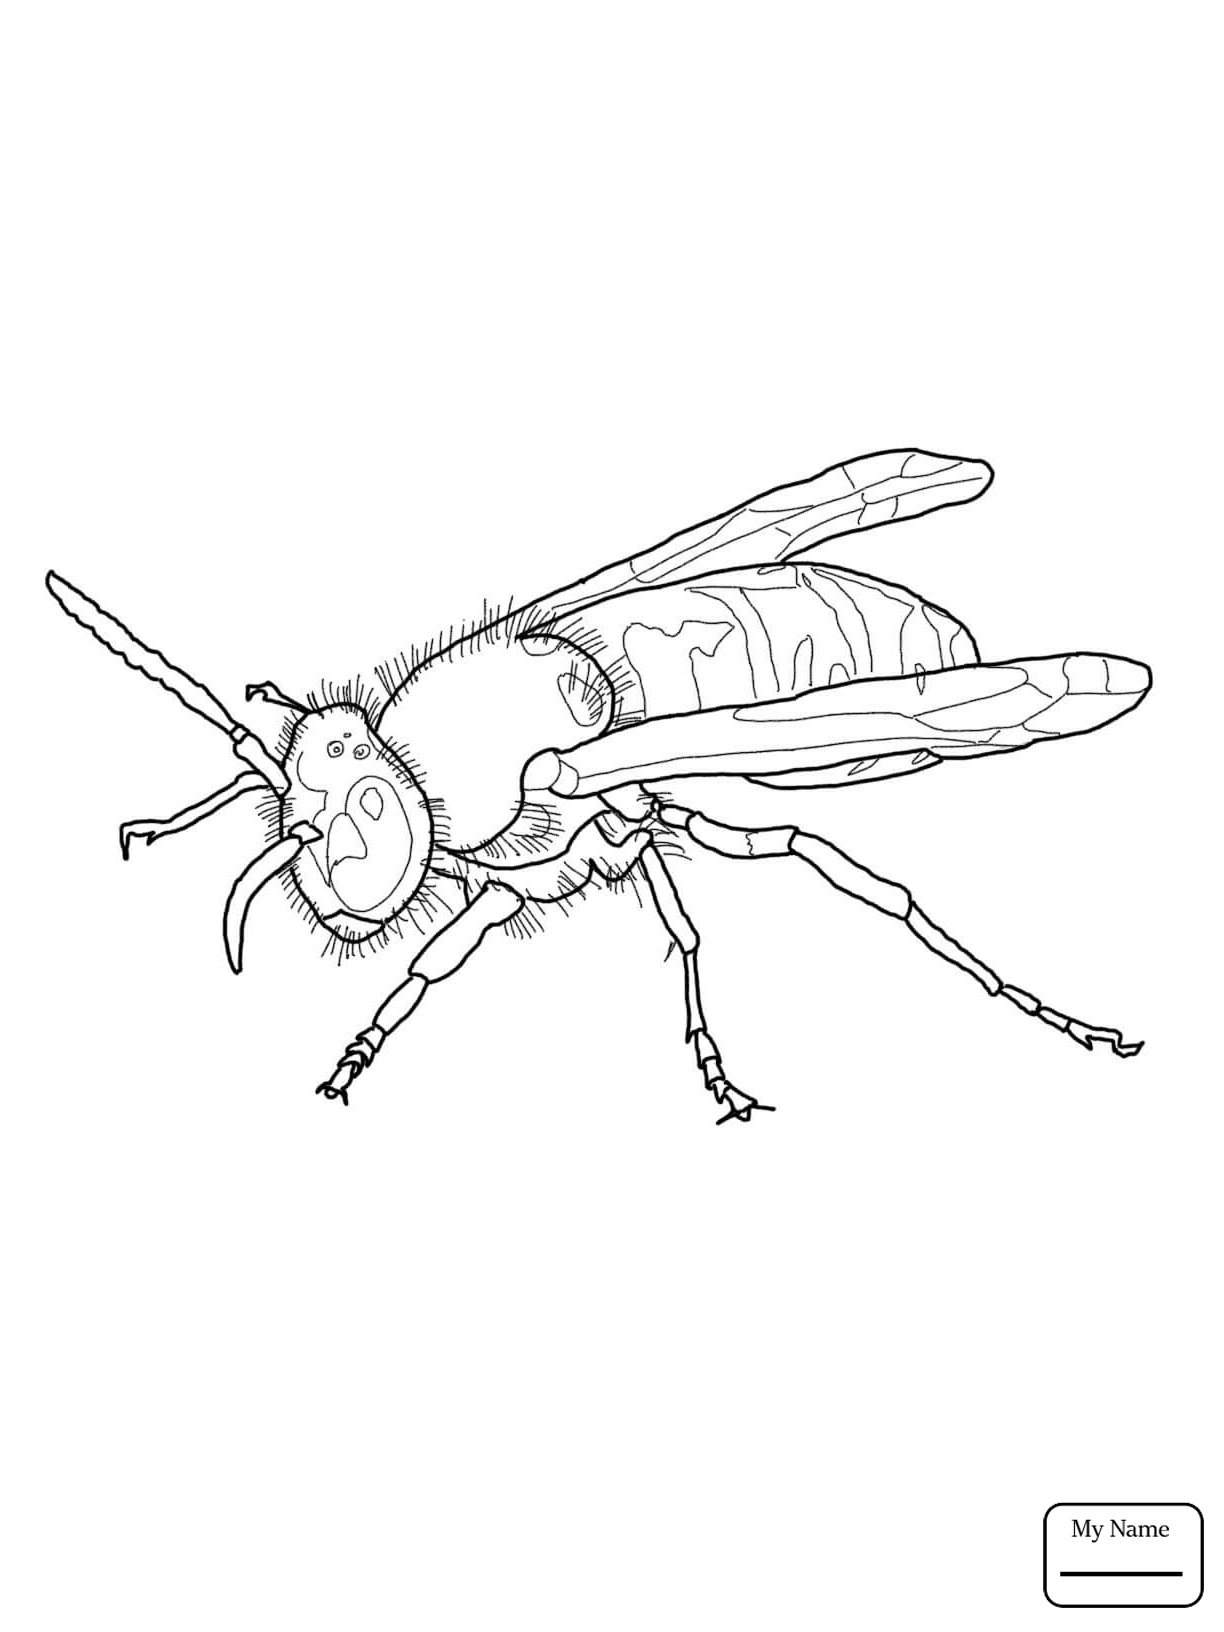 Yellow Jacket Drawing at GetDrawings.com | Free for personal use ...